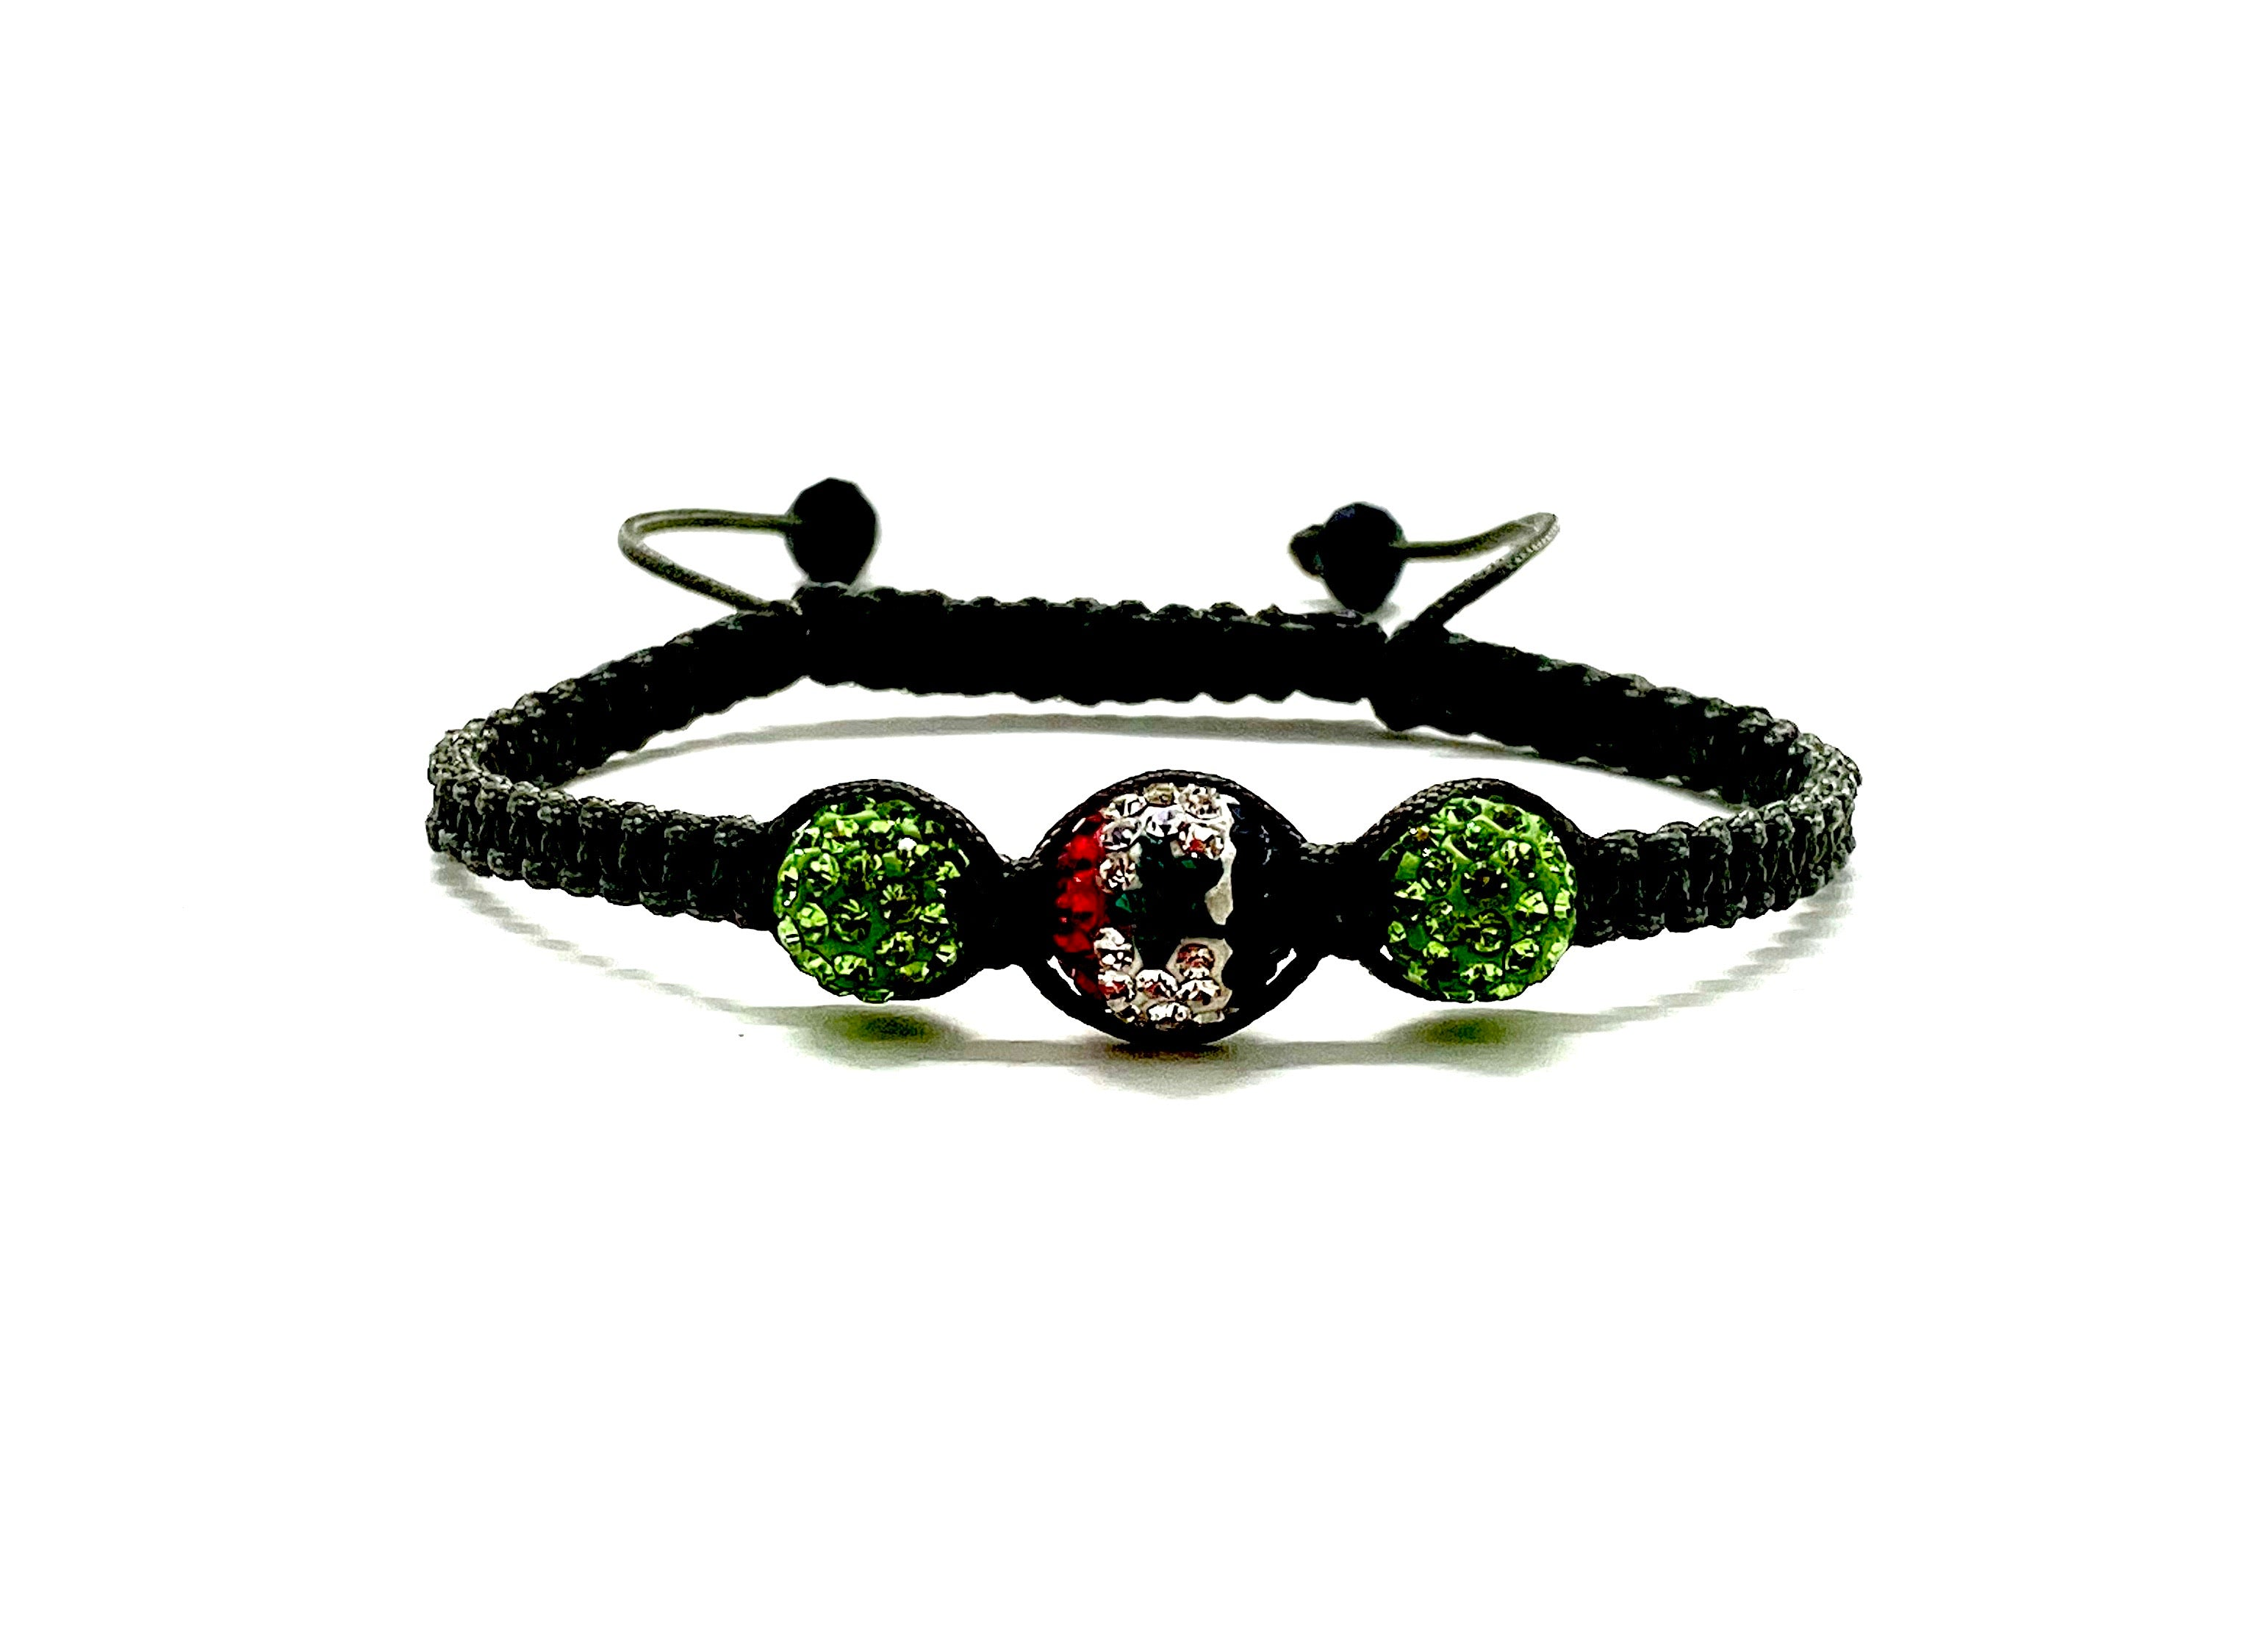 Syrian flag crystal bead bracelet with two light green side beads.